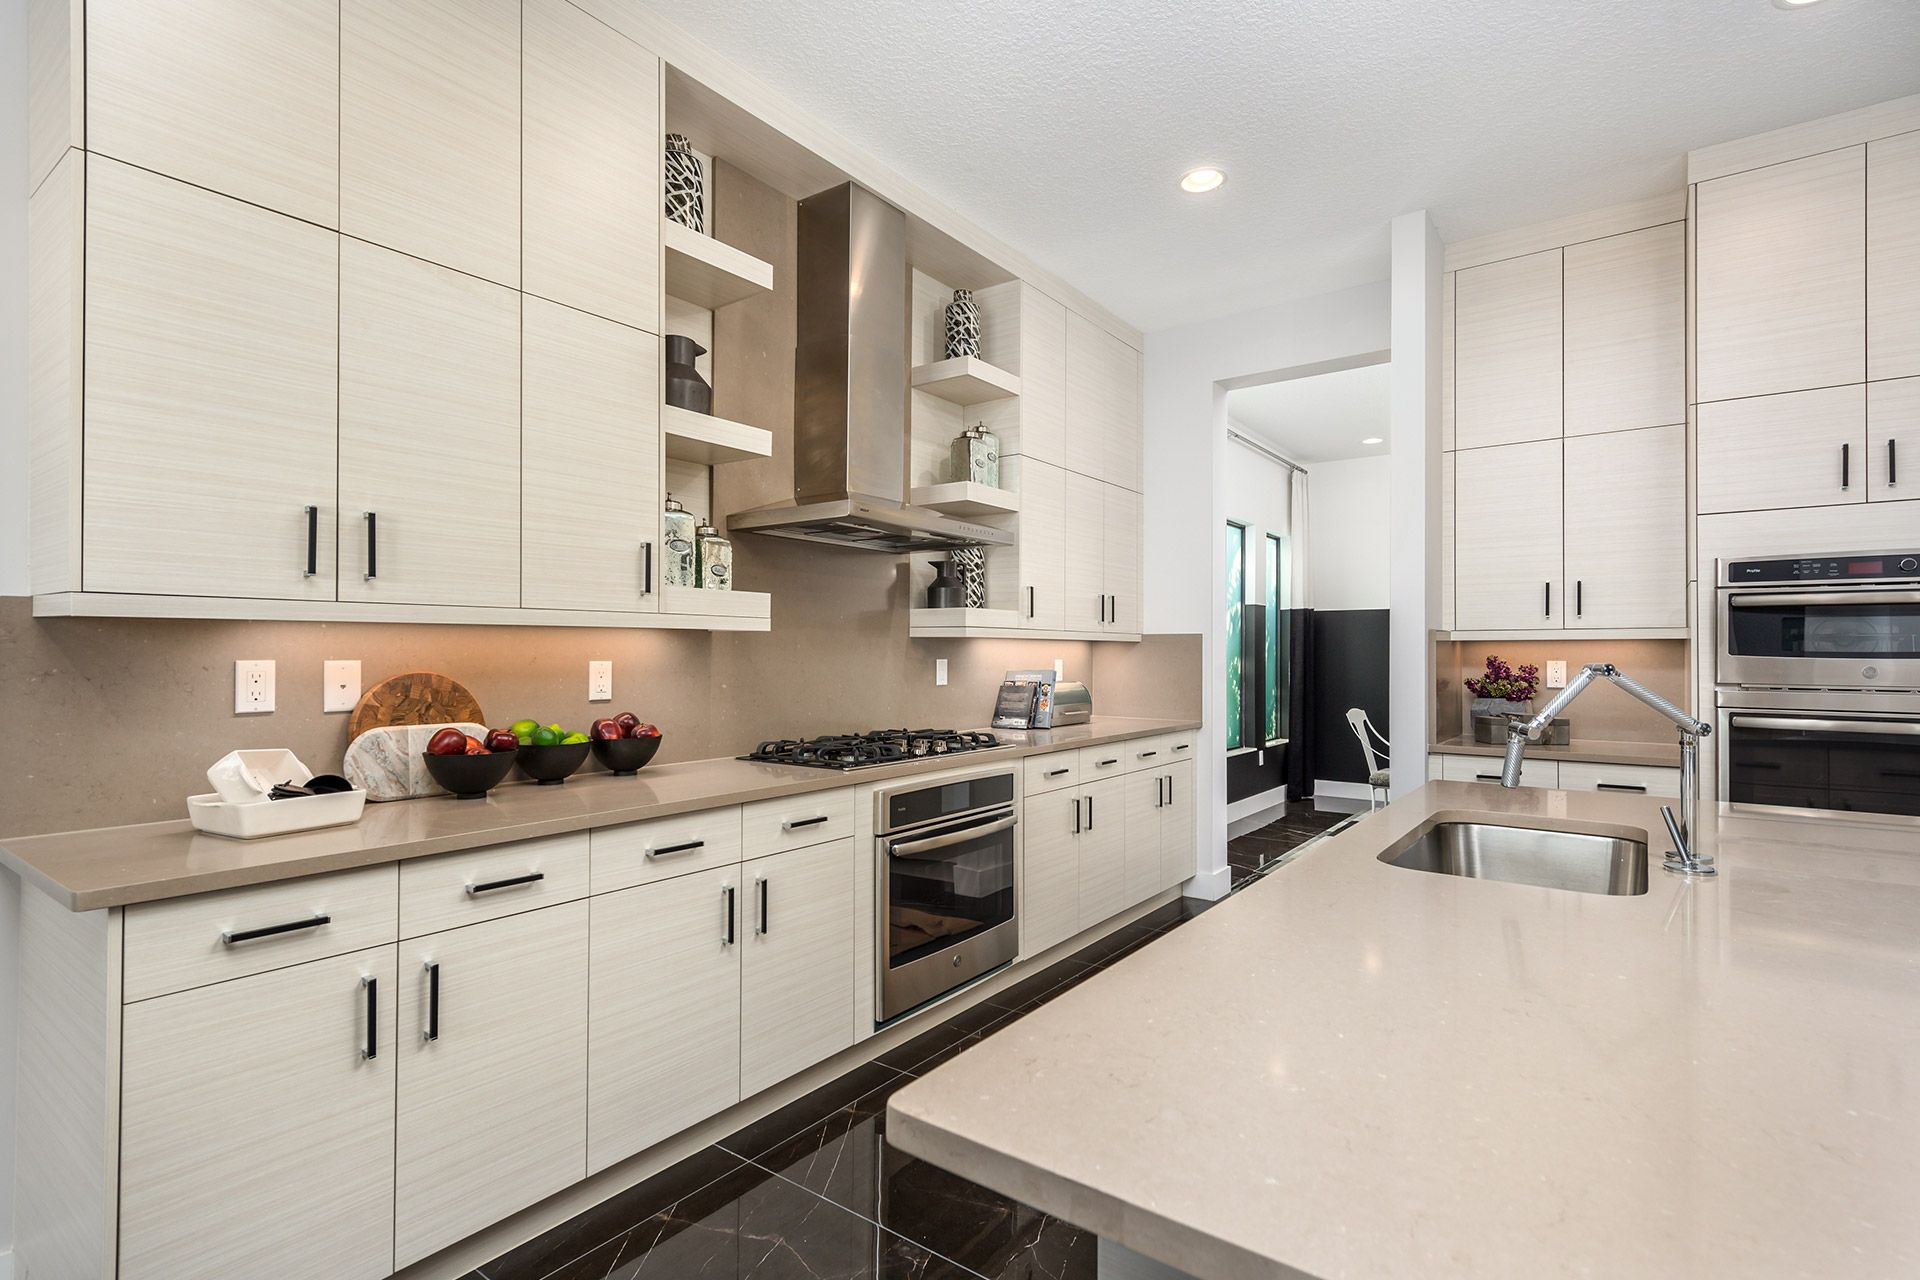 Kitchen featured in the Polynesia By GL Homes in Palm Beach County, FL